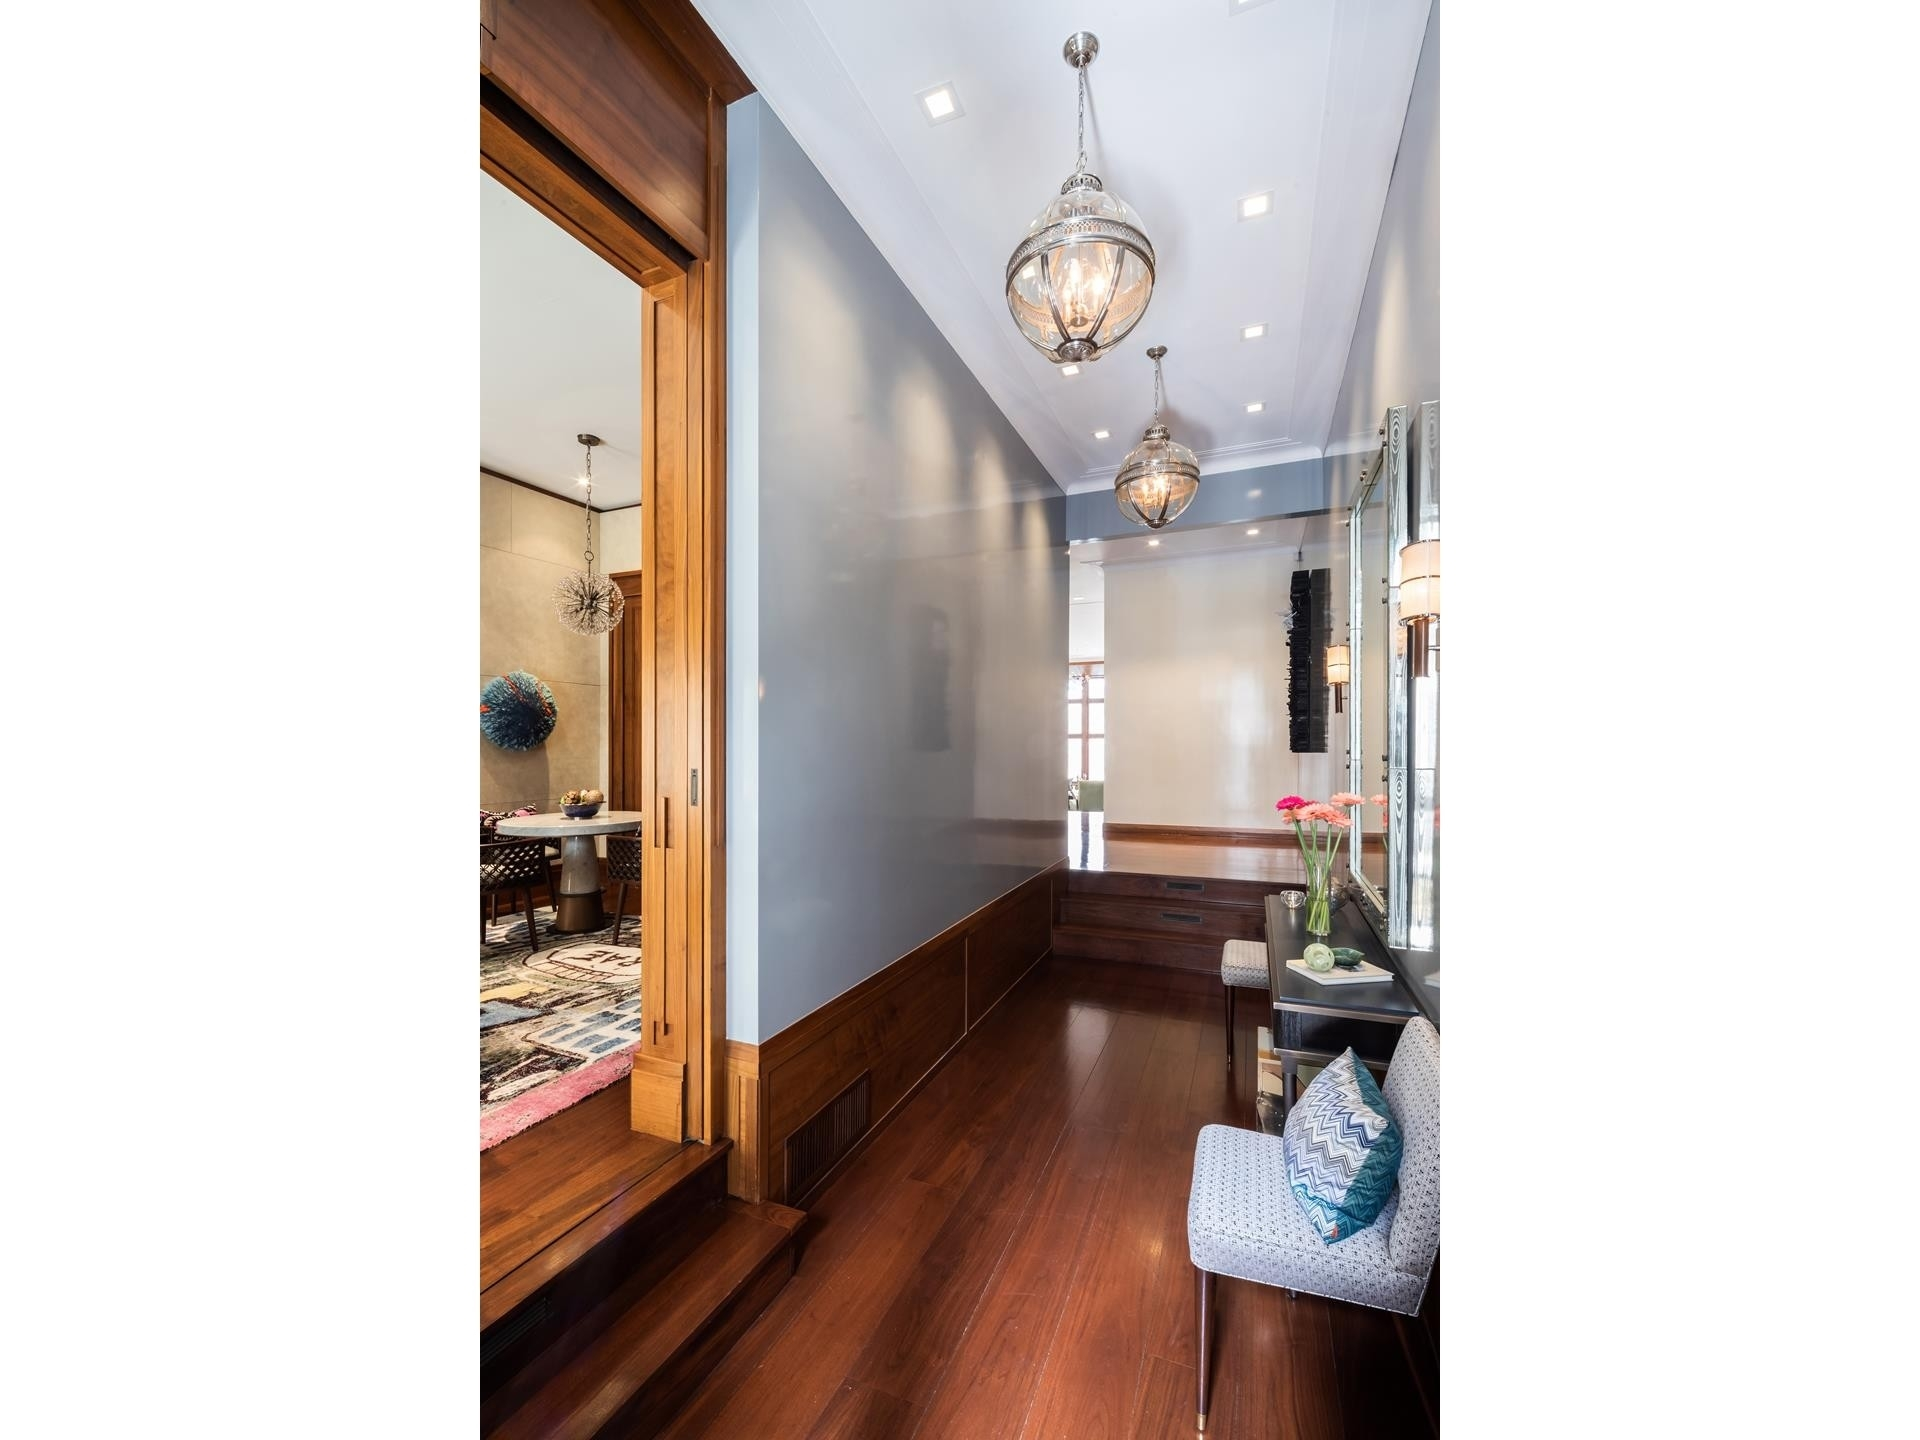 4. Single Family Townhouse 為 特賣 在 159 E 61ST ST , TOWNHOUSE Lenox Hill, 纽约, NY 10065